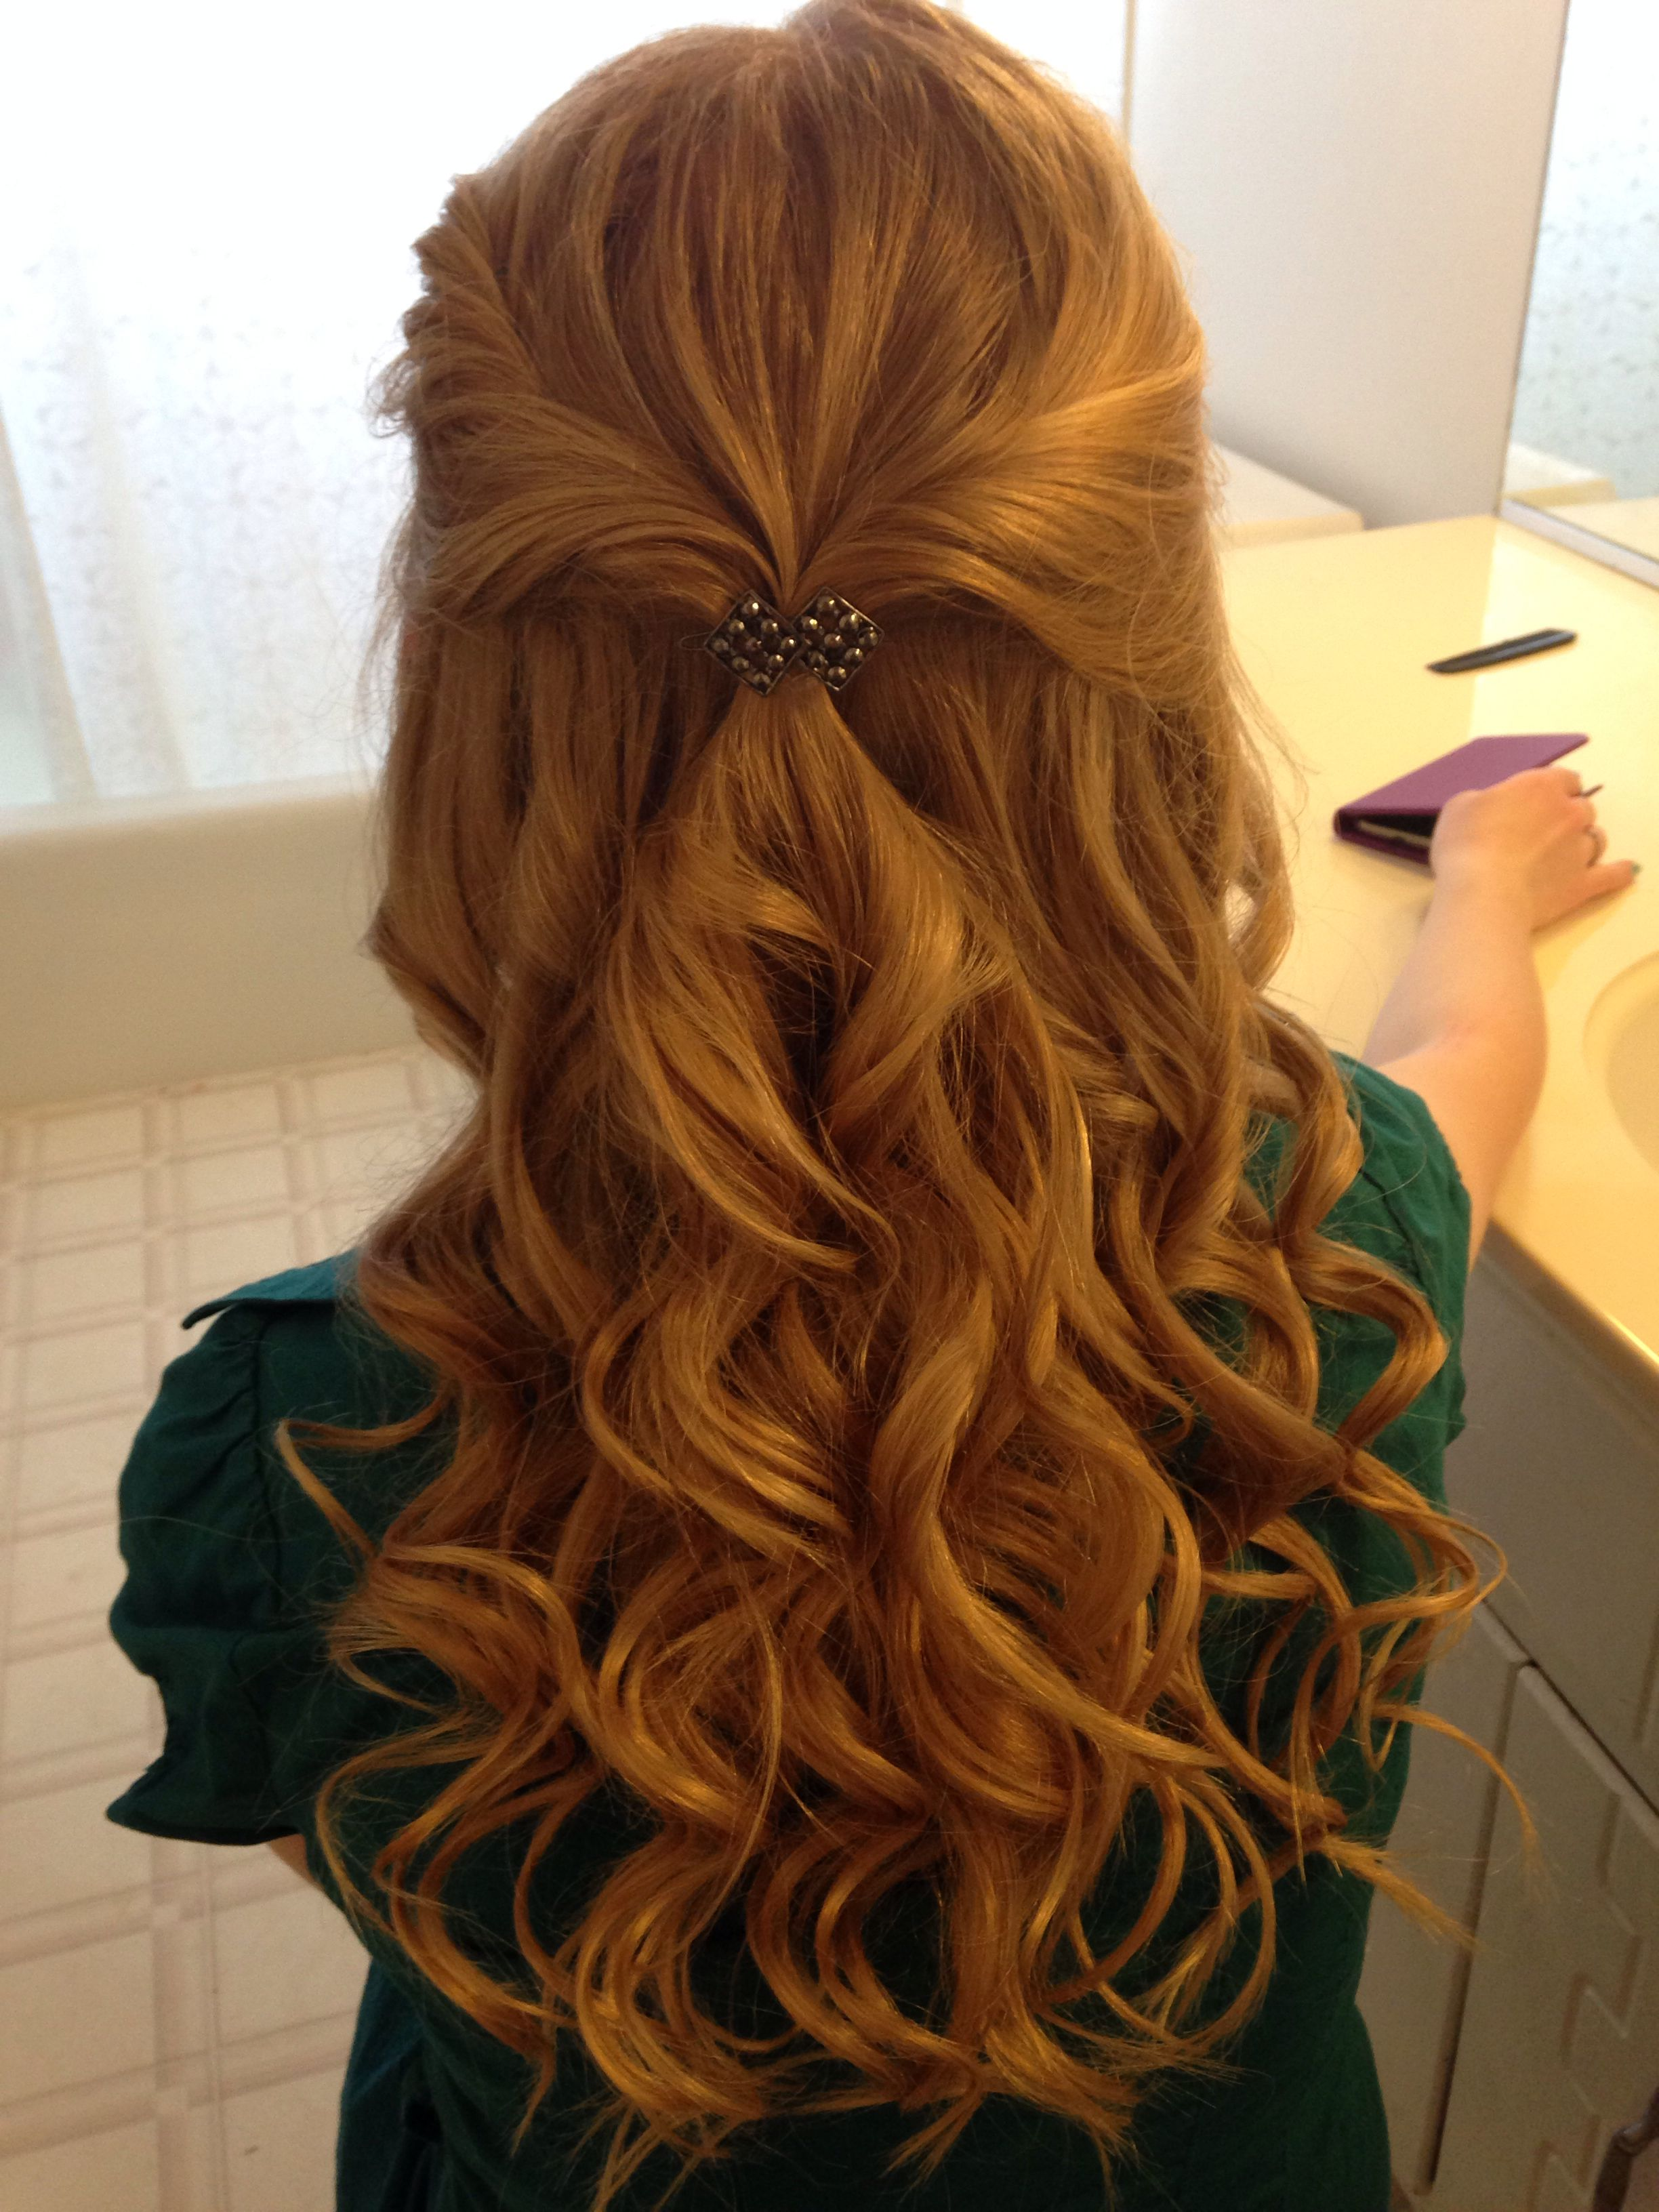 Pin By Erin On Hair Curly Hair Styles Easy Long Hair Styles Down Curly Hairstyles